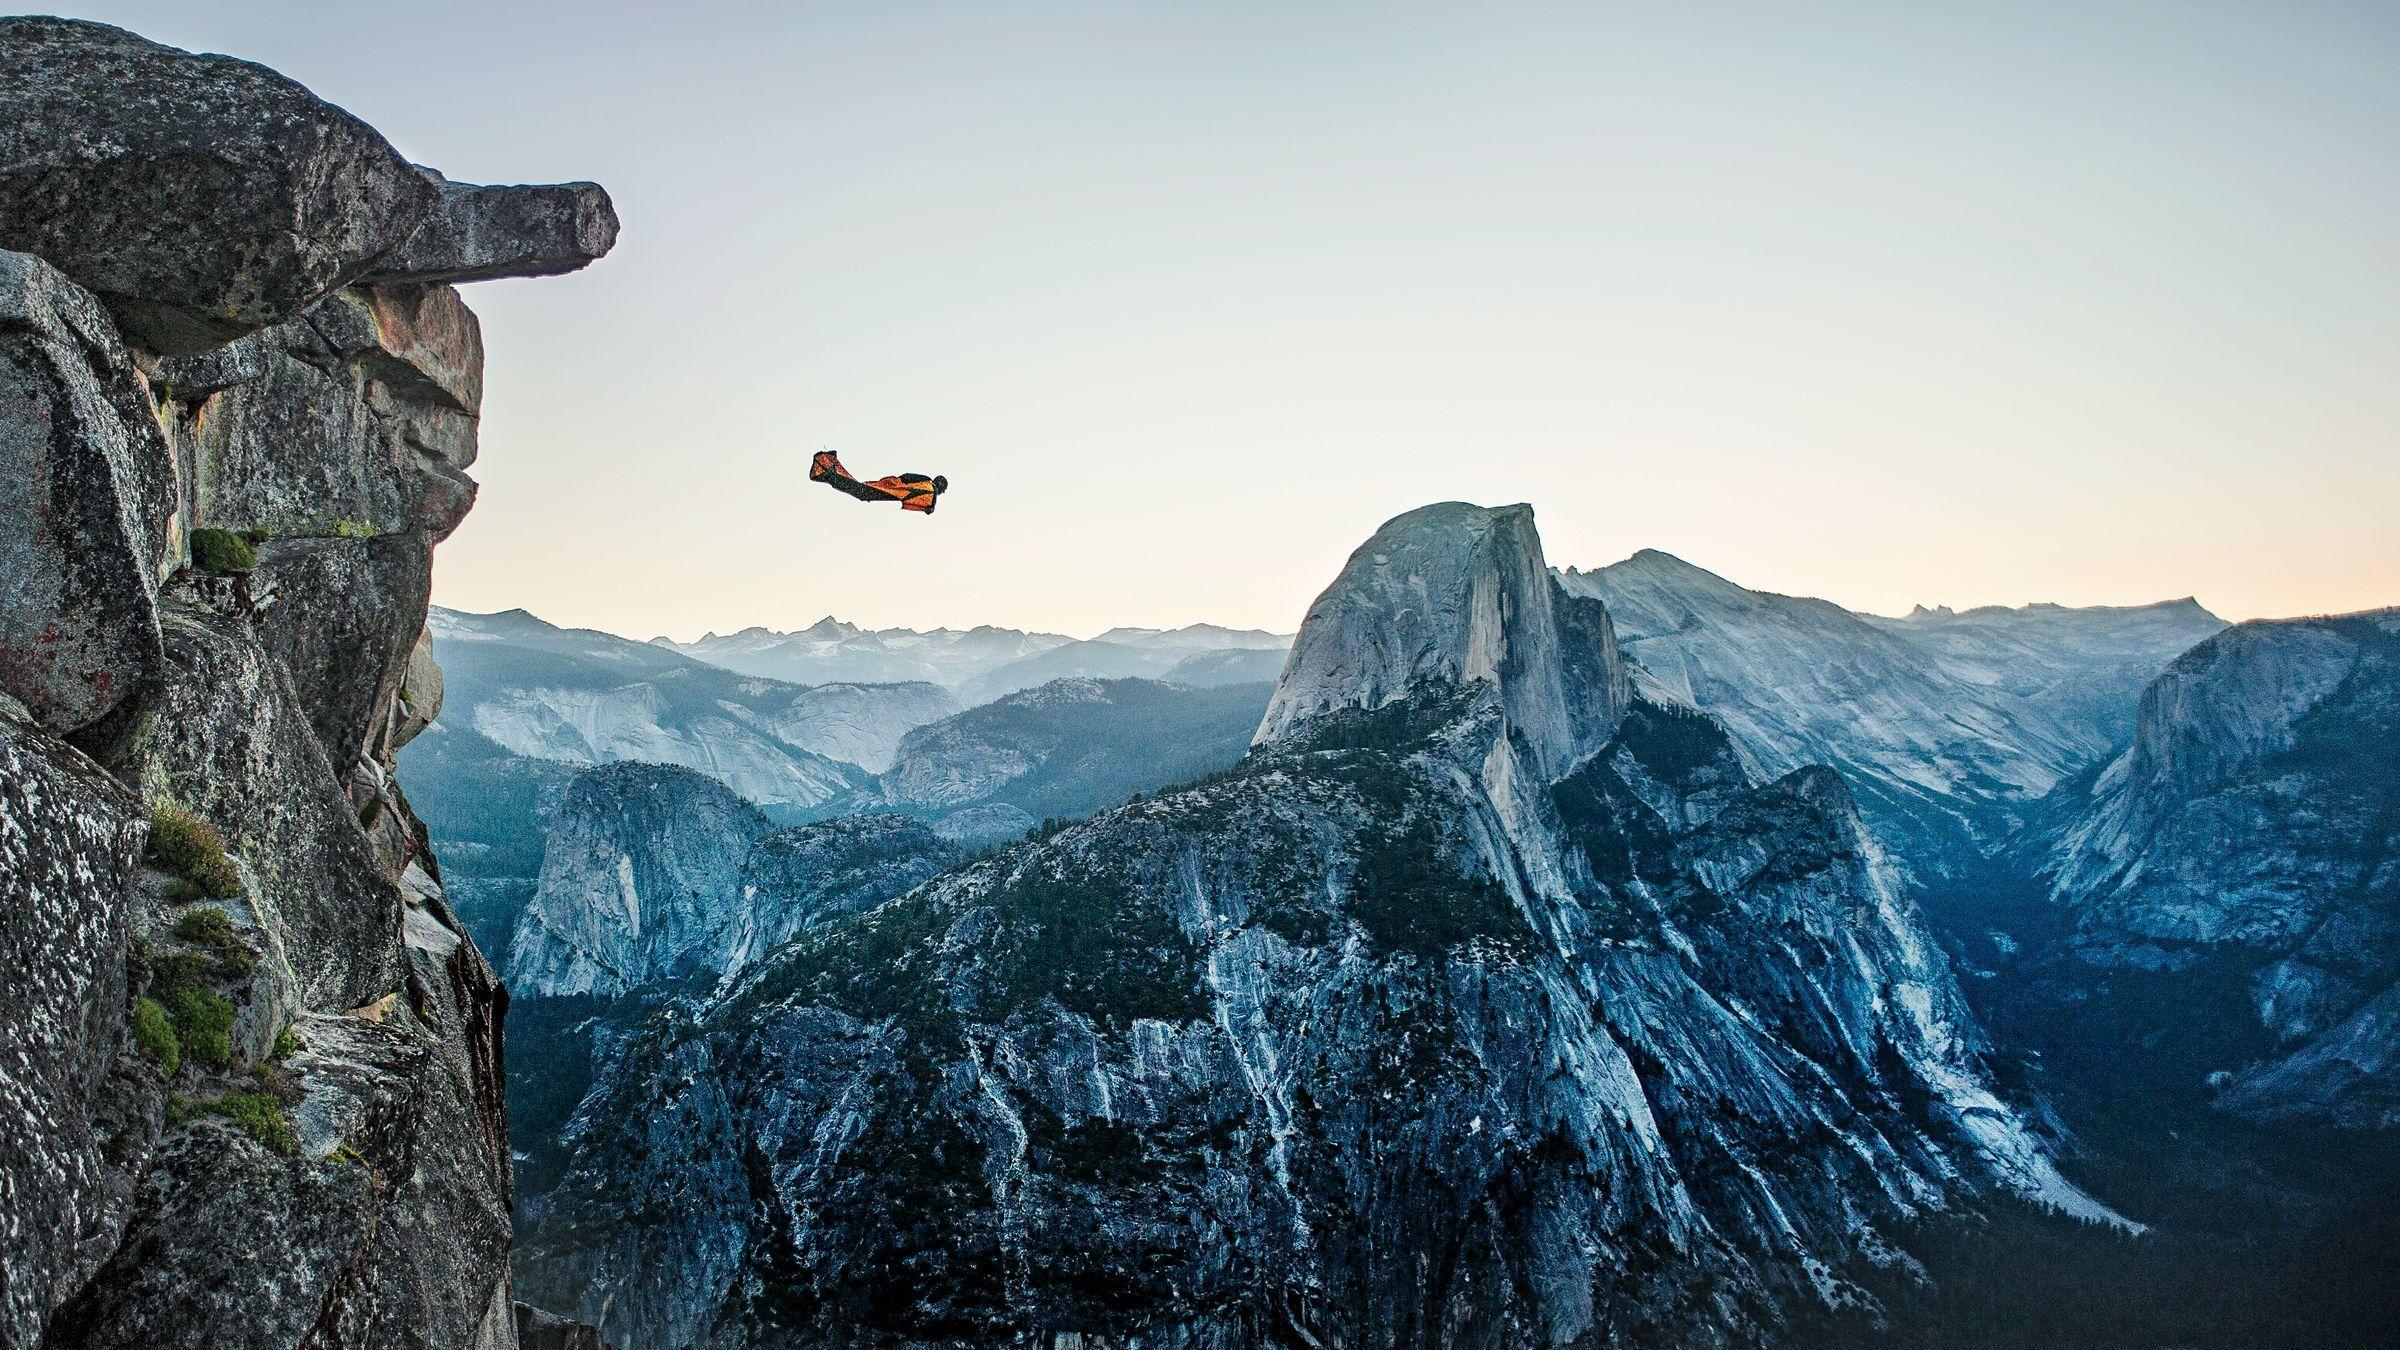 skydiving wallpapers | WallpaperUP